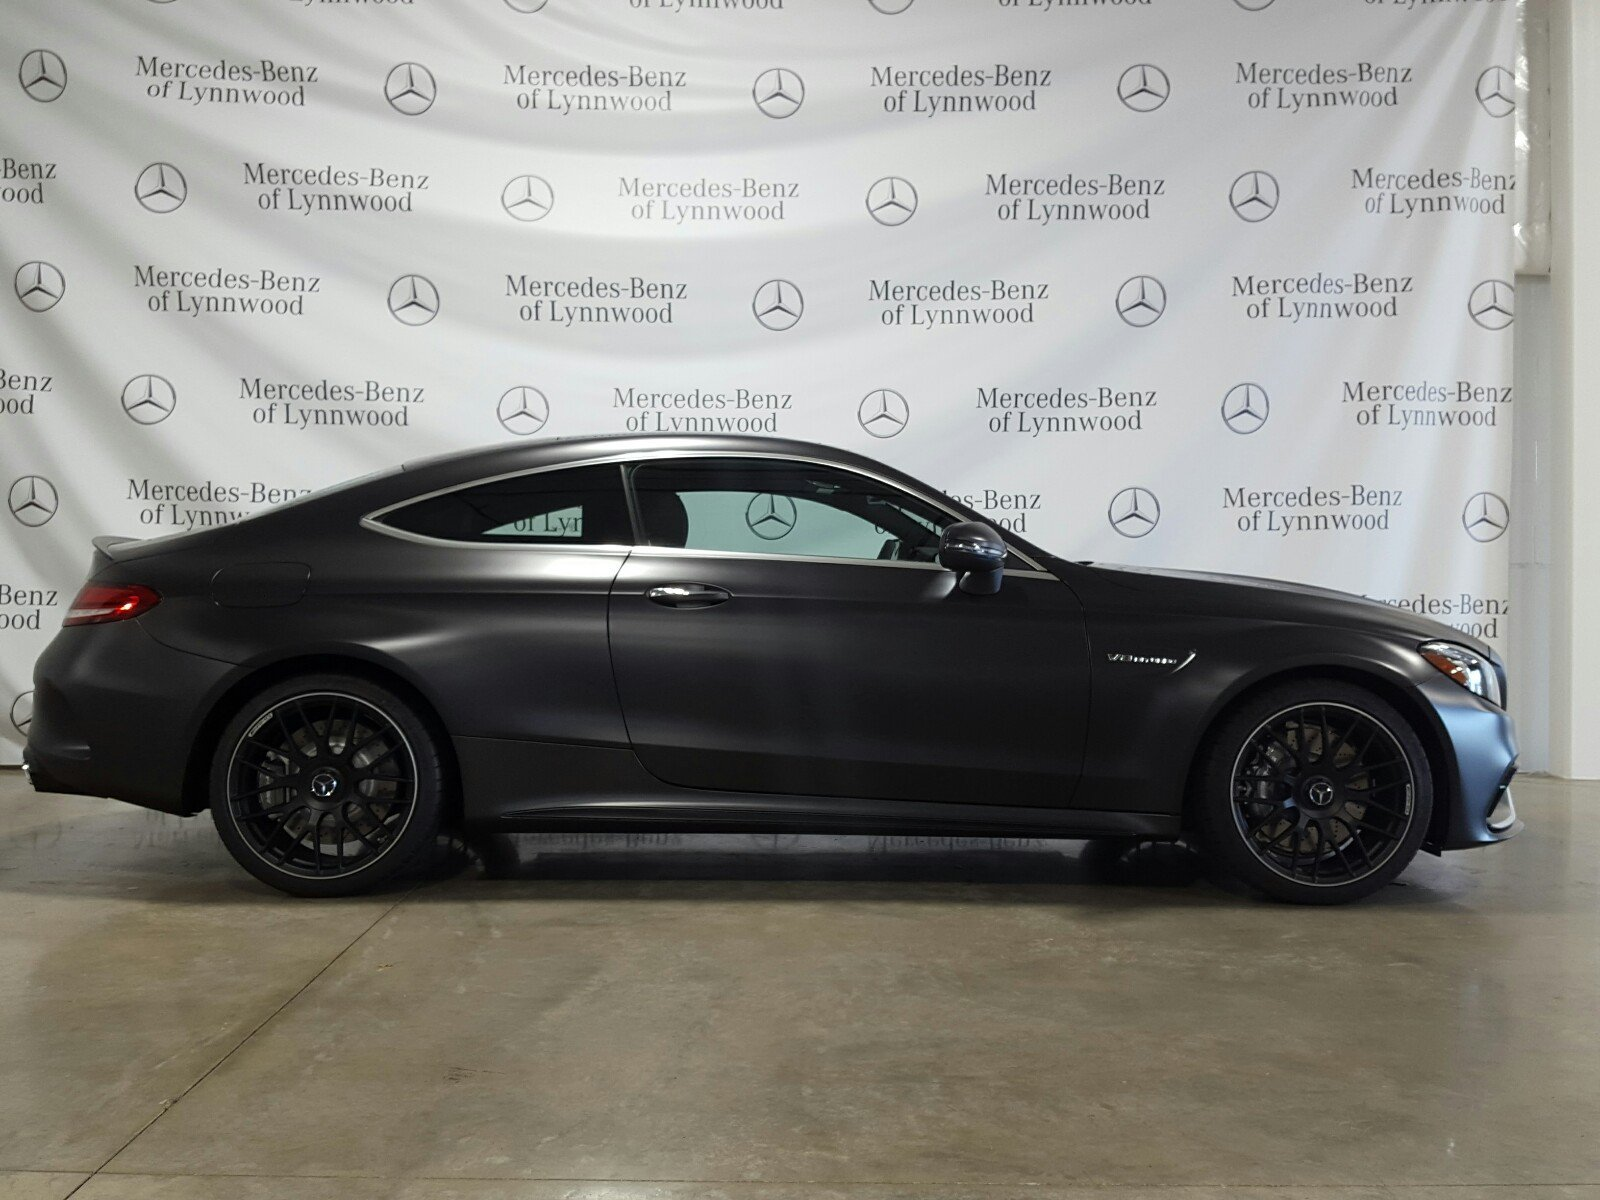 New 2019 Mercedes Benz C Class AMG C 63 Coupe Coupe in Lynnwood